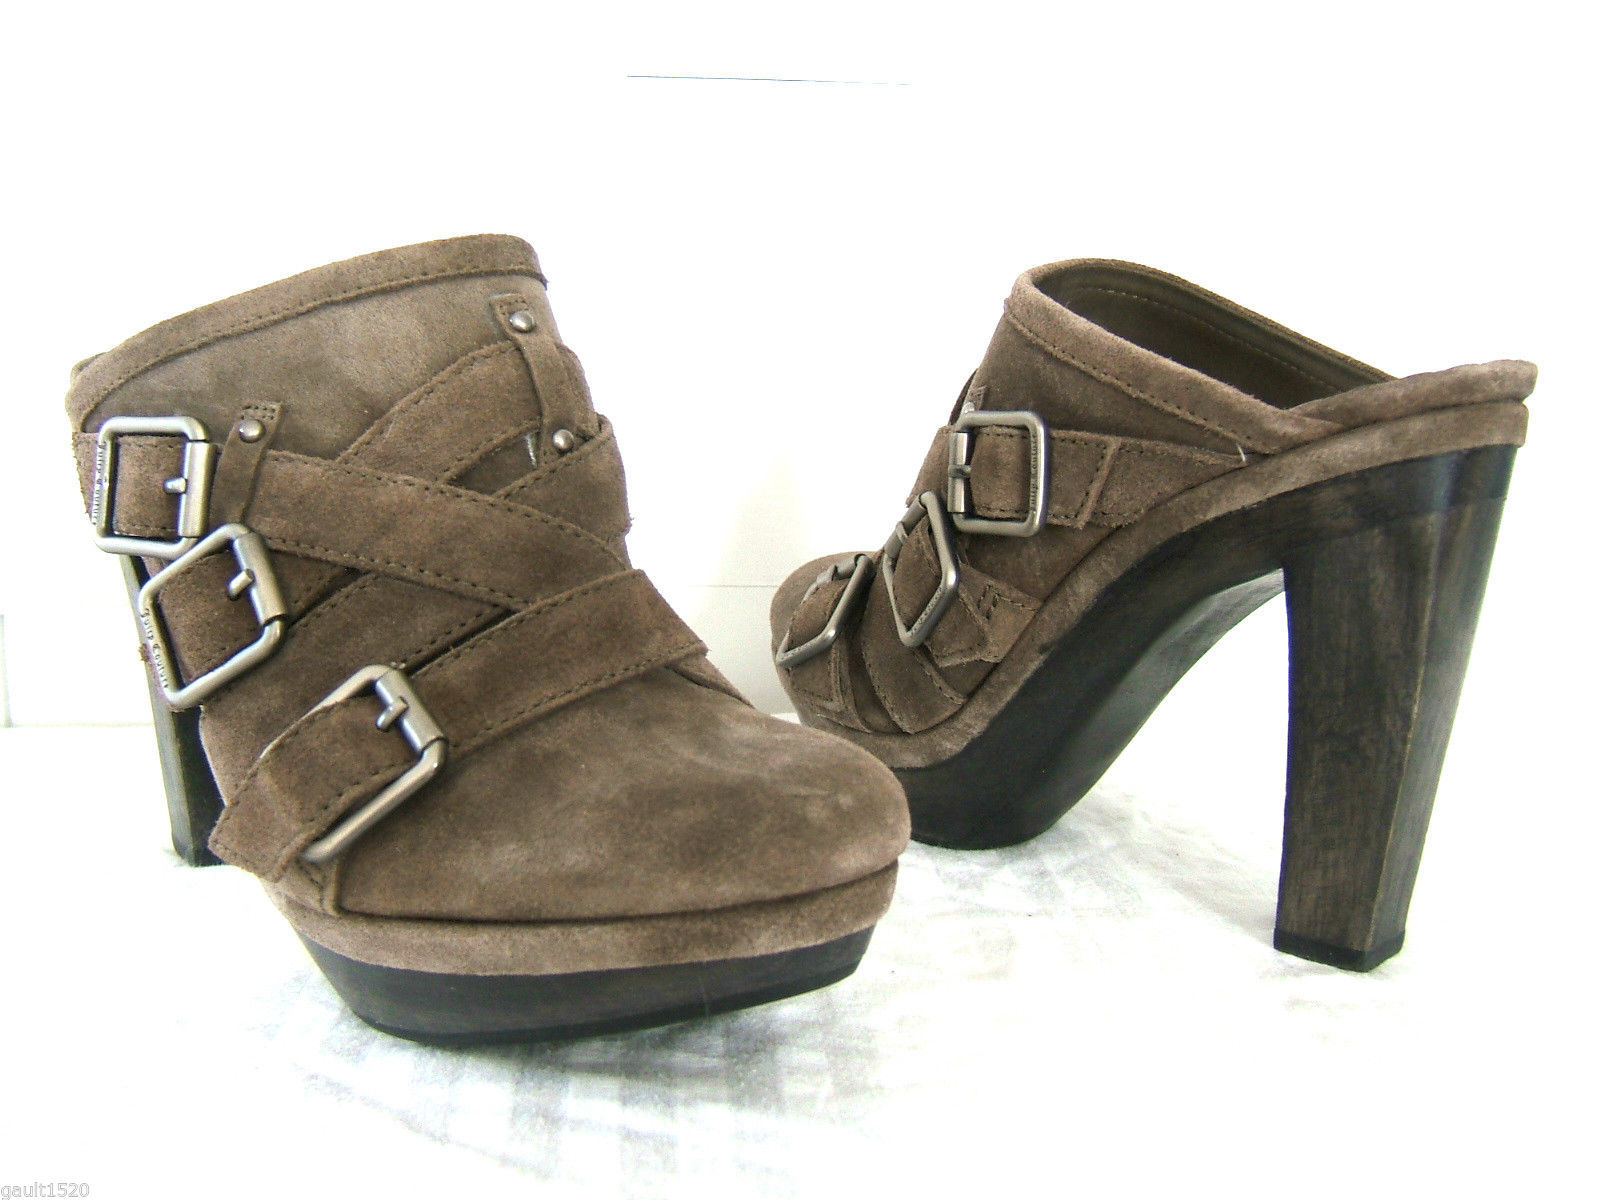 7696244c38902 NEW Juicy Couture Suede Brown Leather Colette Sexy Heels Shoes Mules 8.5 M   225 -  148.00